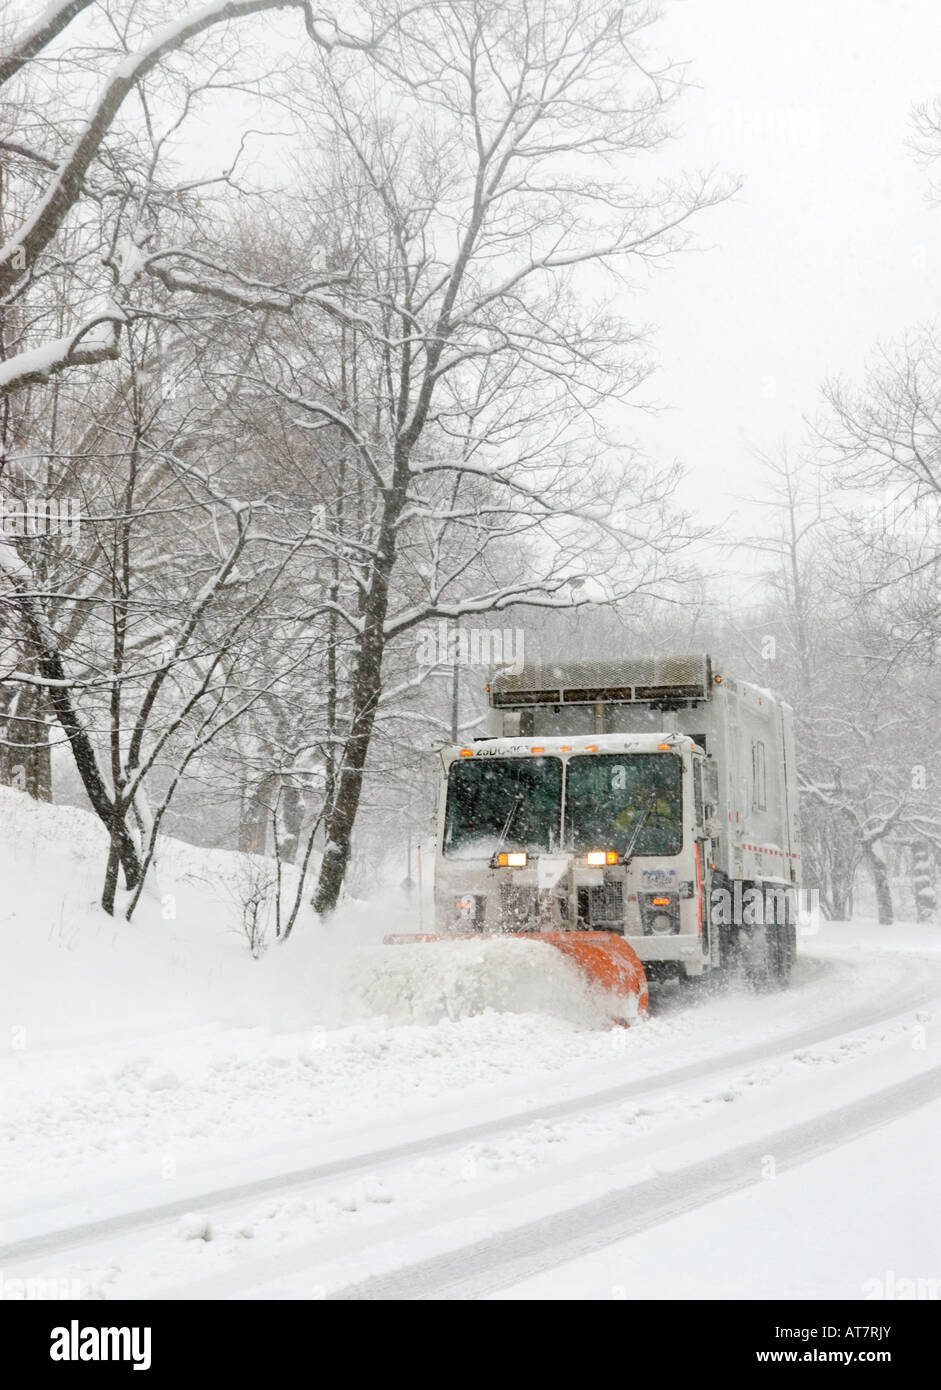 Snowplow in Central Park NYC - Stock Image